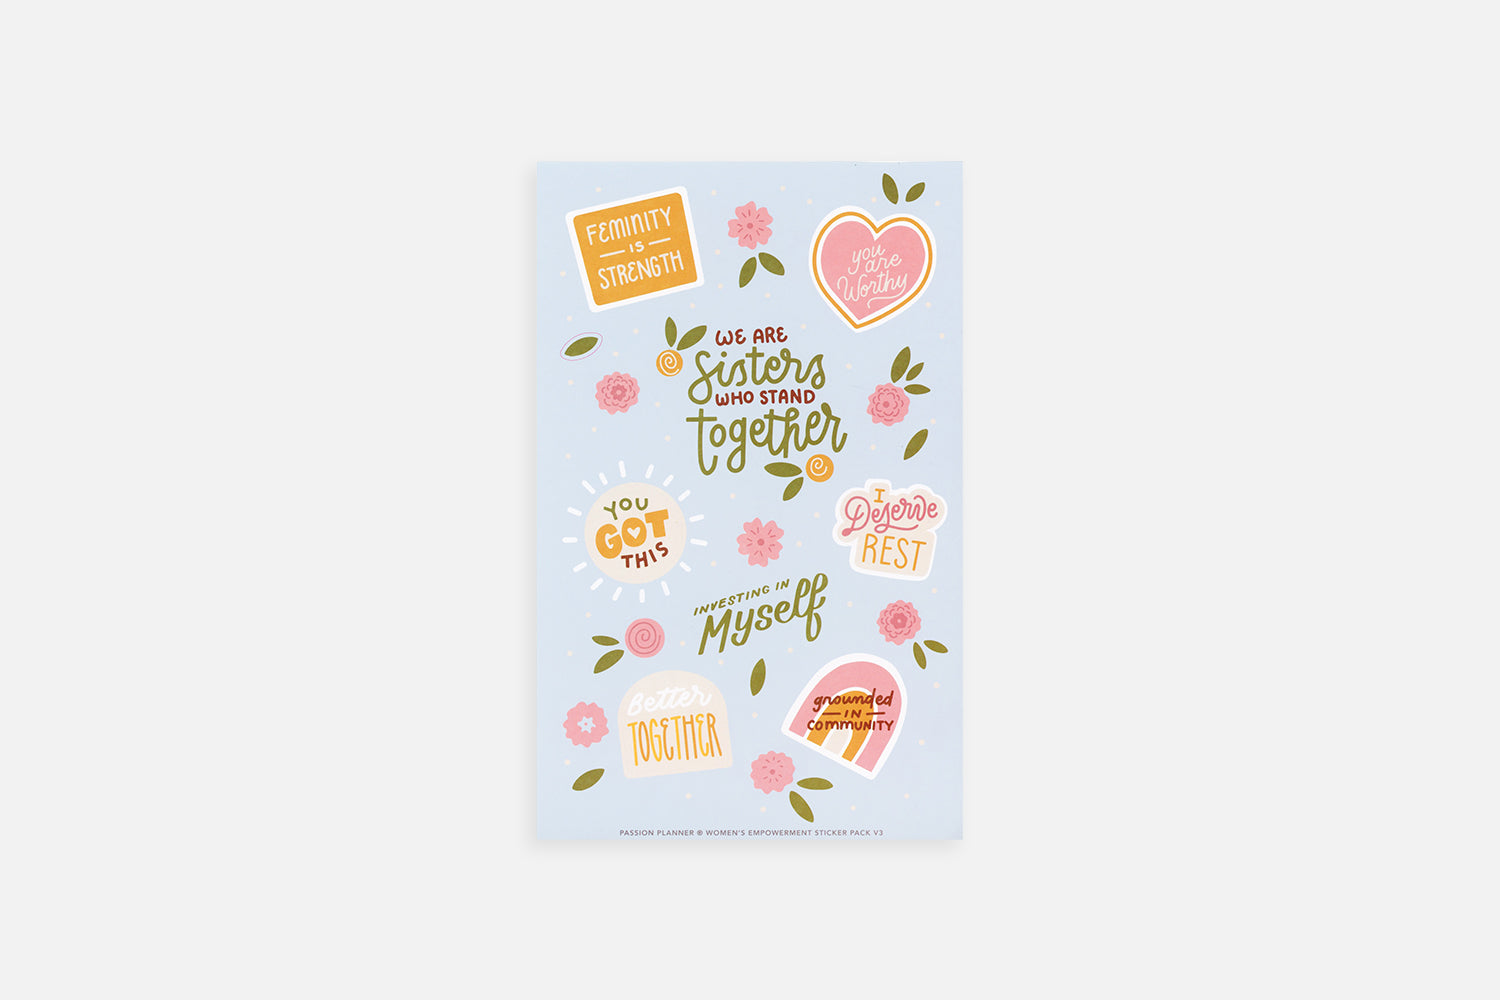 Women's Empowerment Sticker Pack V3 - Passion Planner